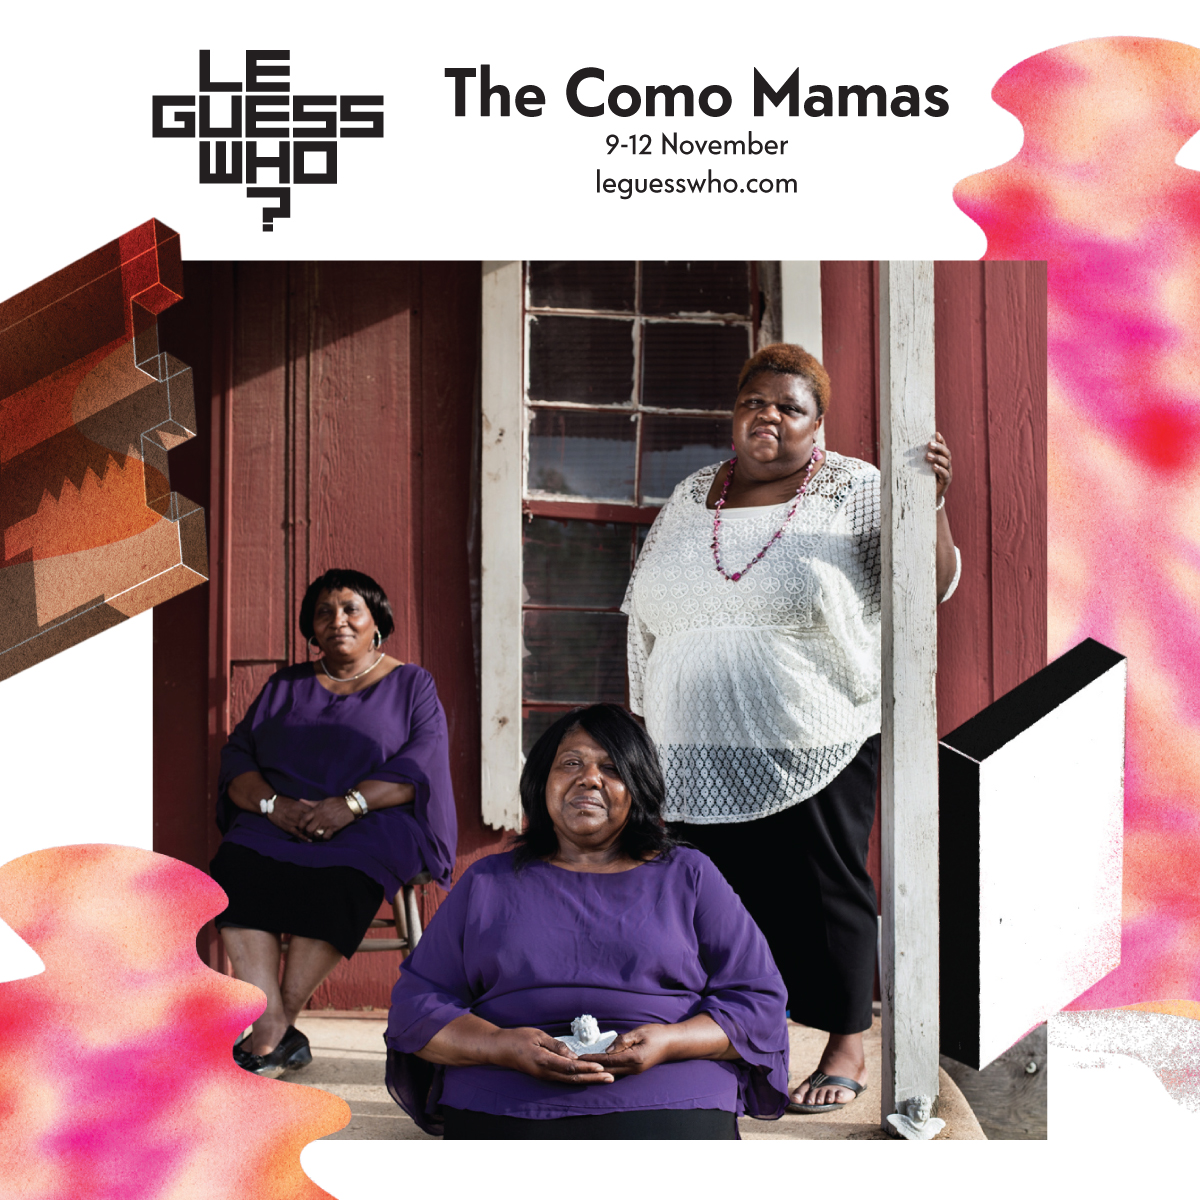 The Como Mamas: gospel trinity that can move and save you, lift you up & pull you through